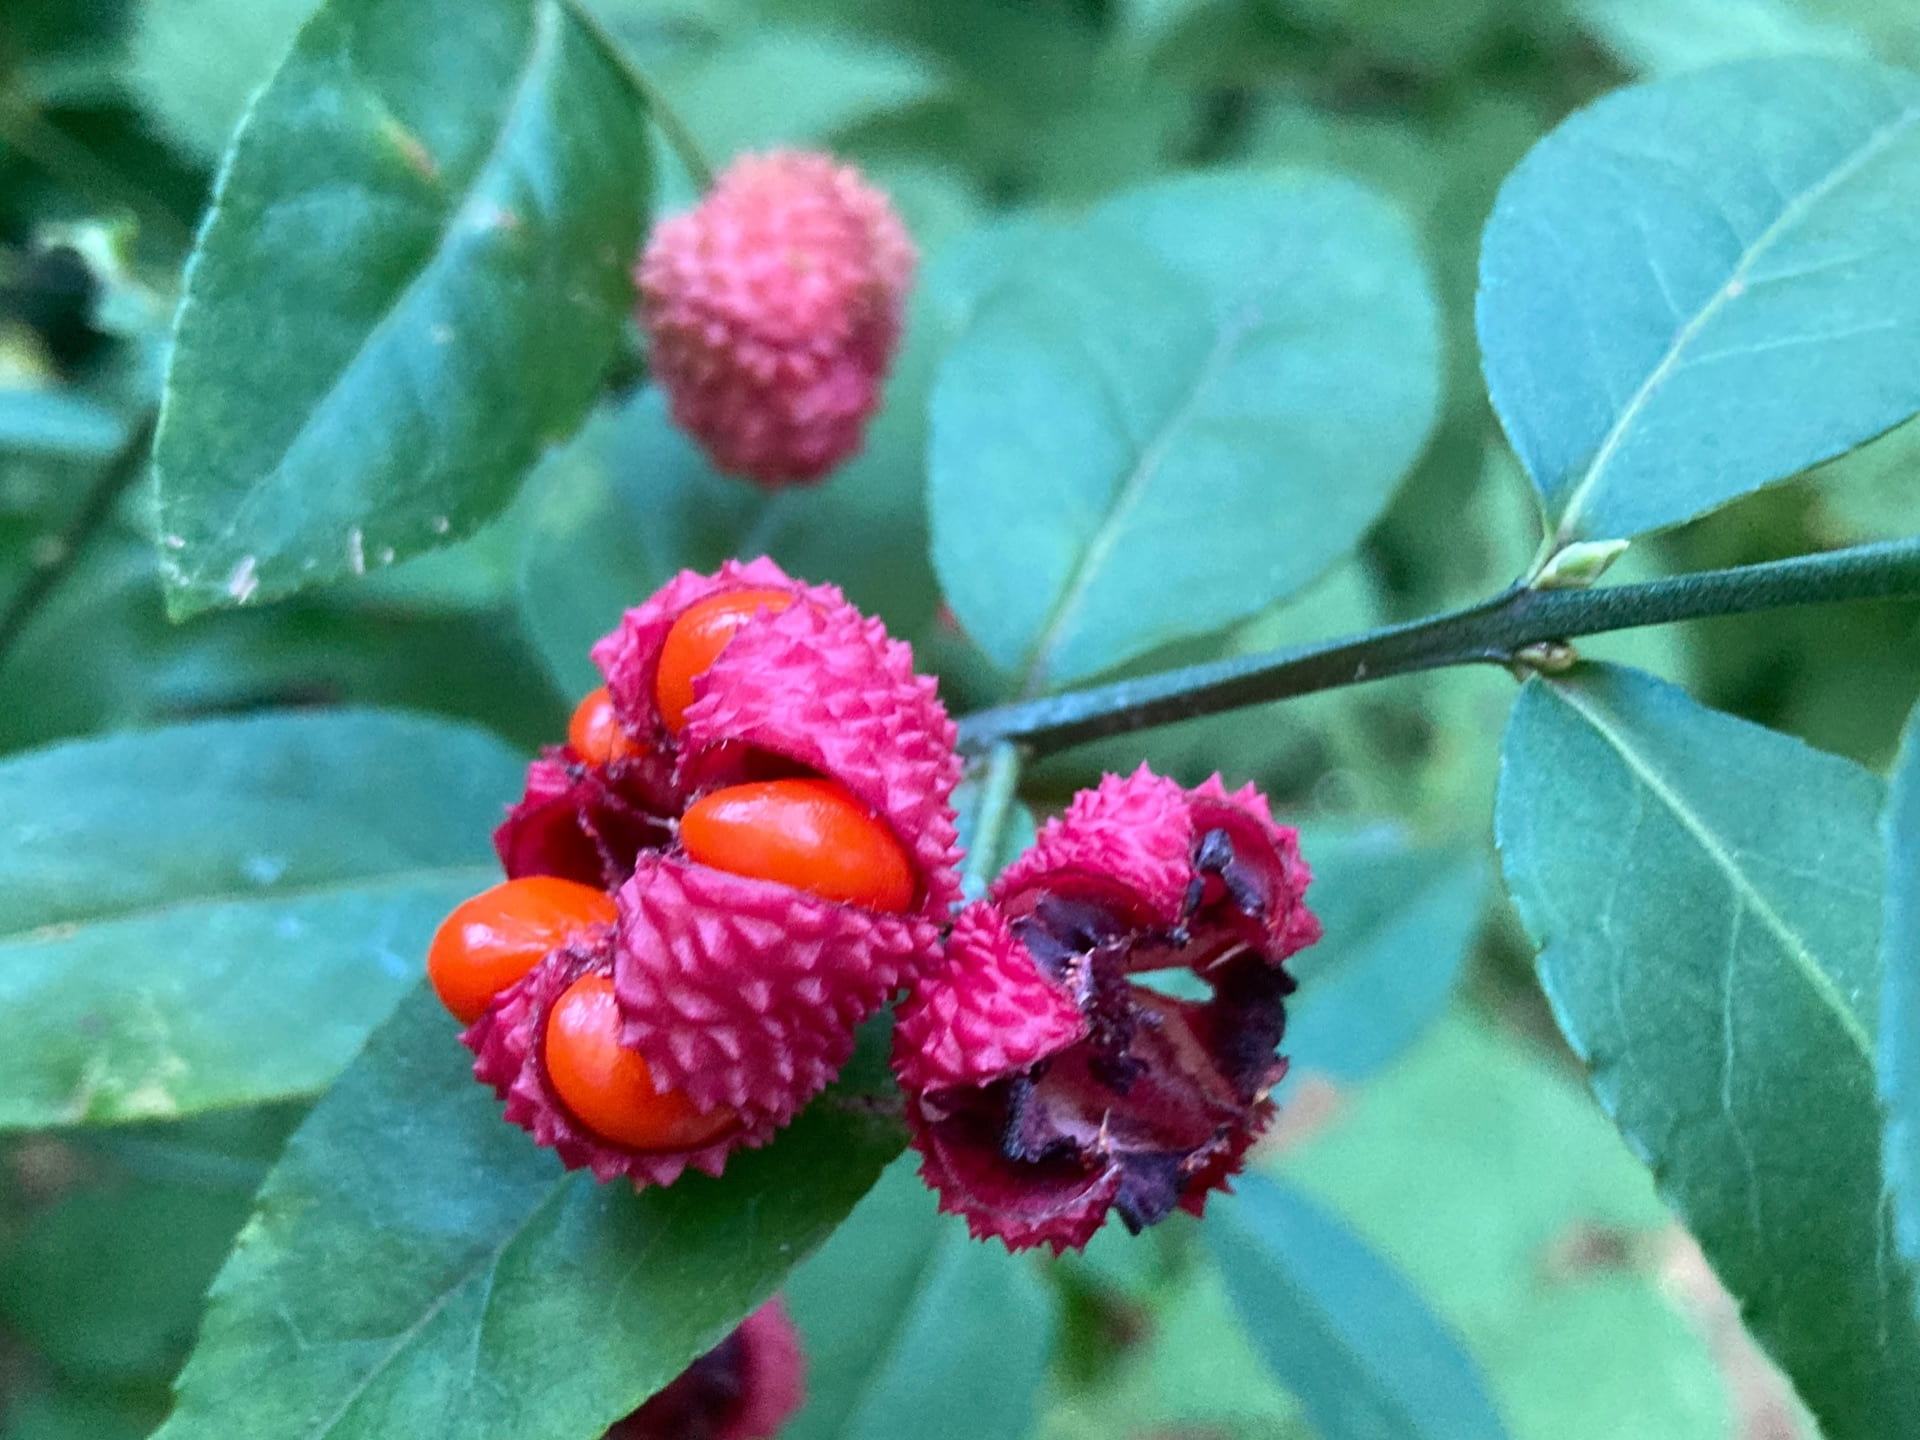 The showy fruit on this native Euonymus, Euonymus americanus, gives it the common name American strawberry bush.